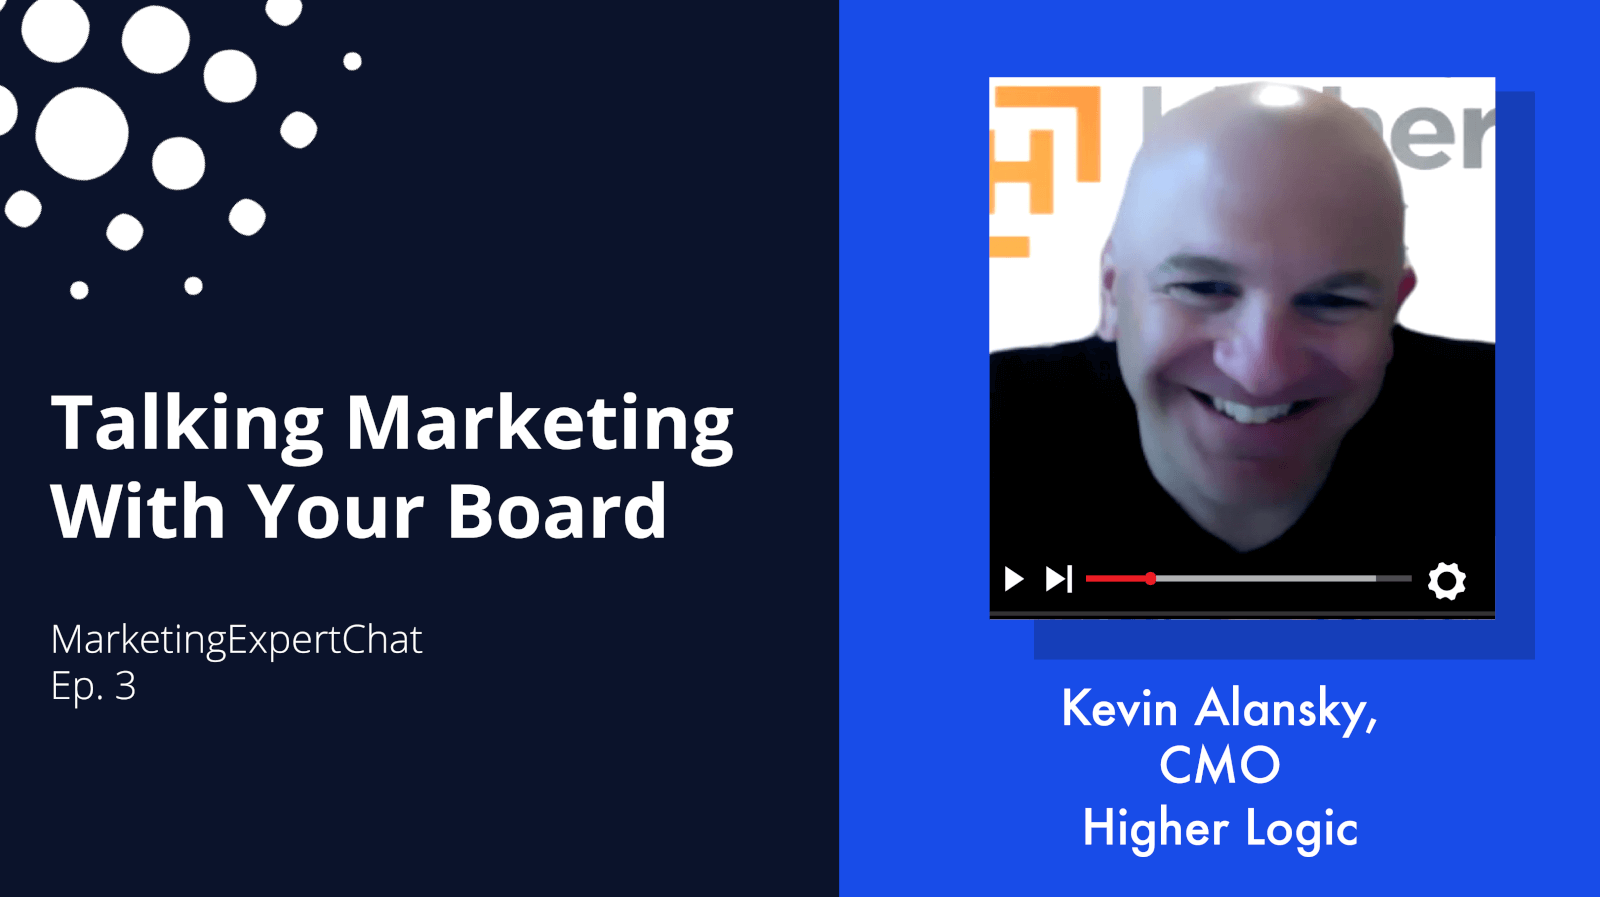 Strategic Marketing: Start Connecting with Your Board